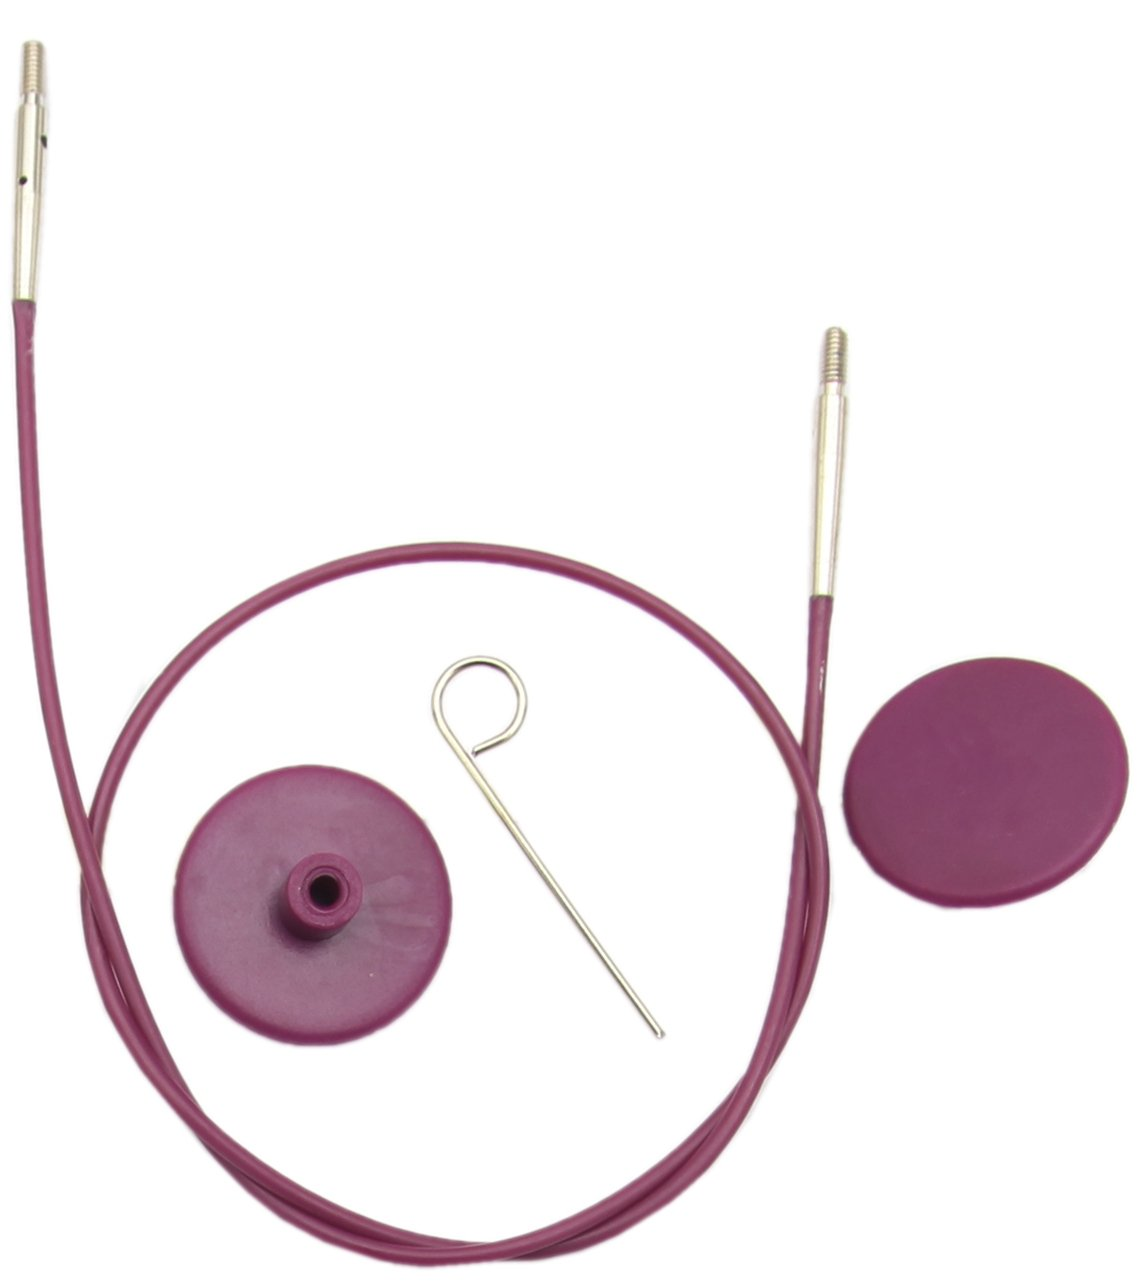 KnitPro KP10500 | Purple Interchangeable Cable | 20cm